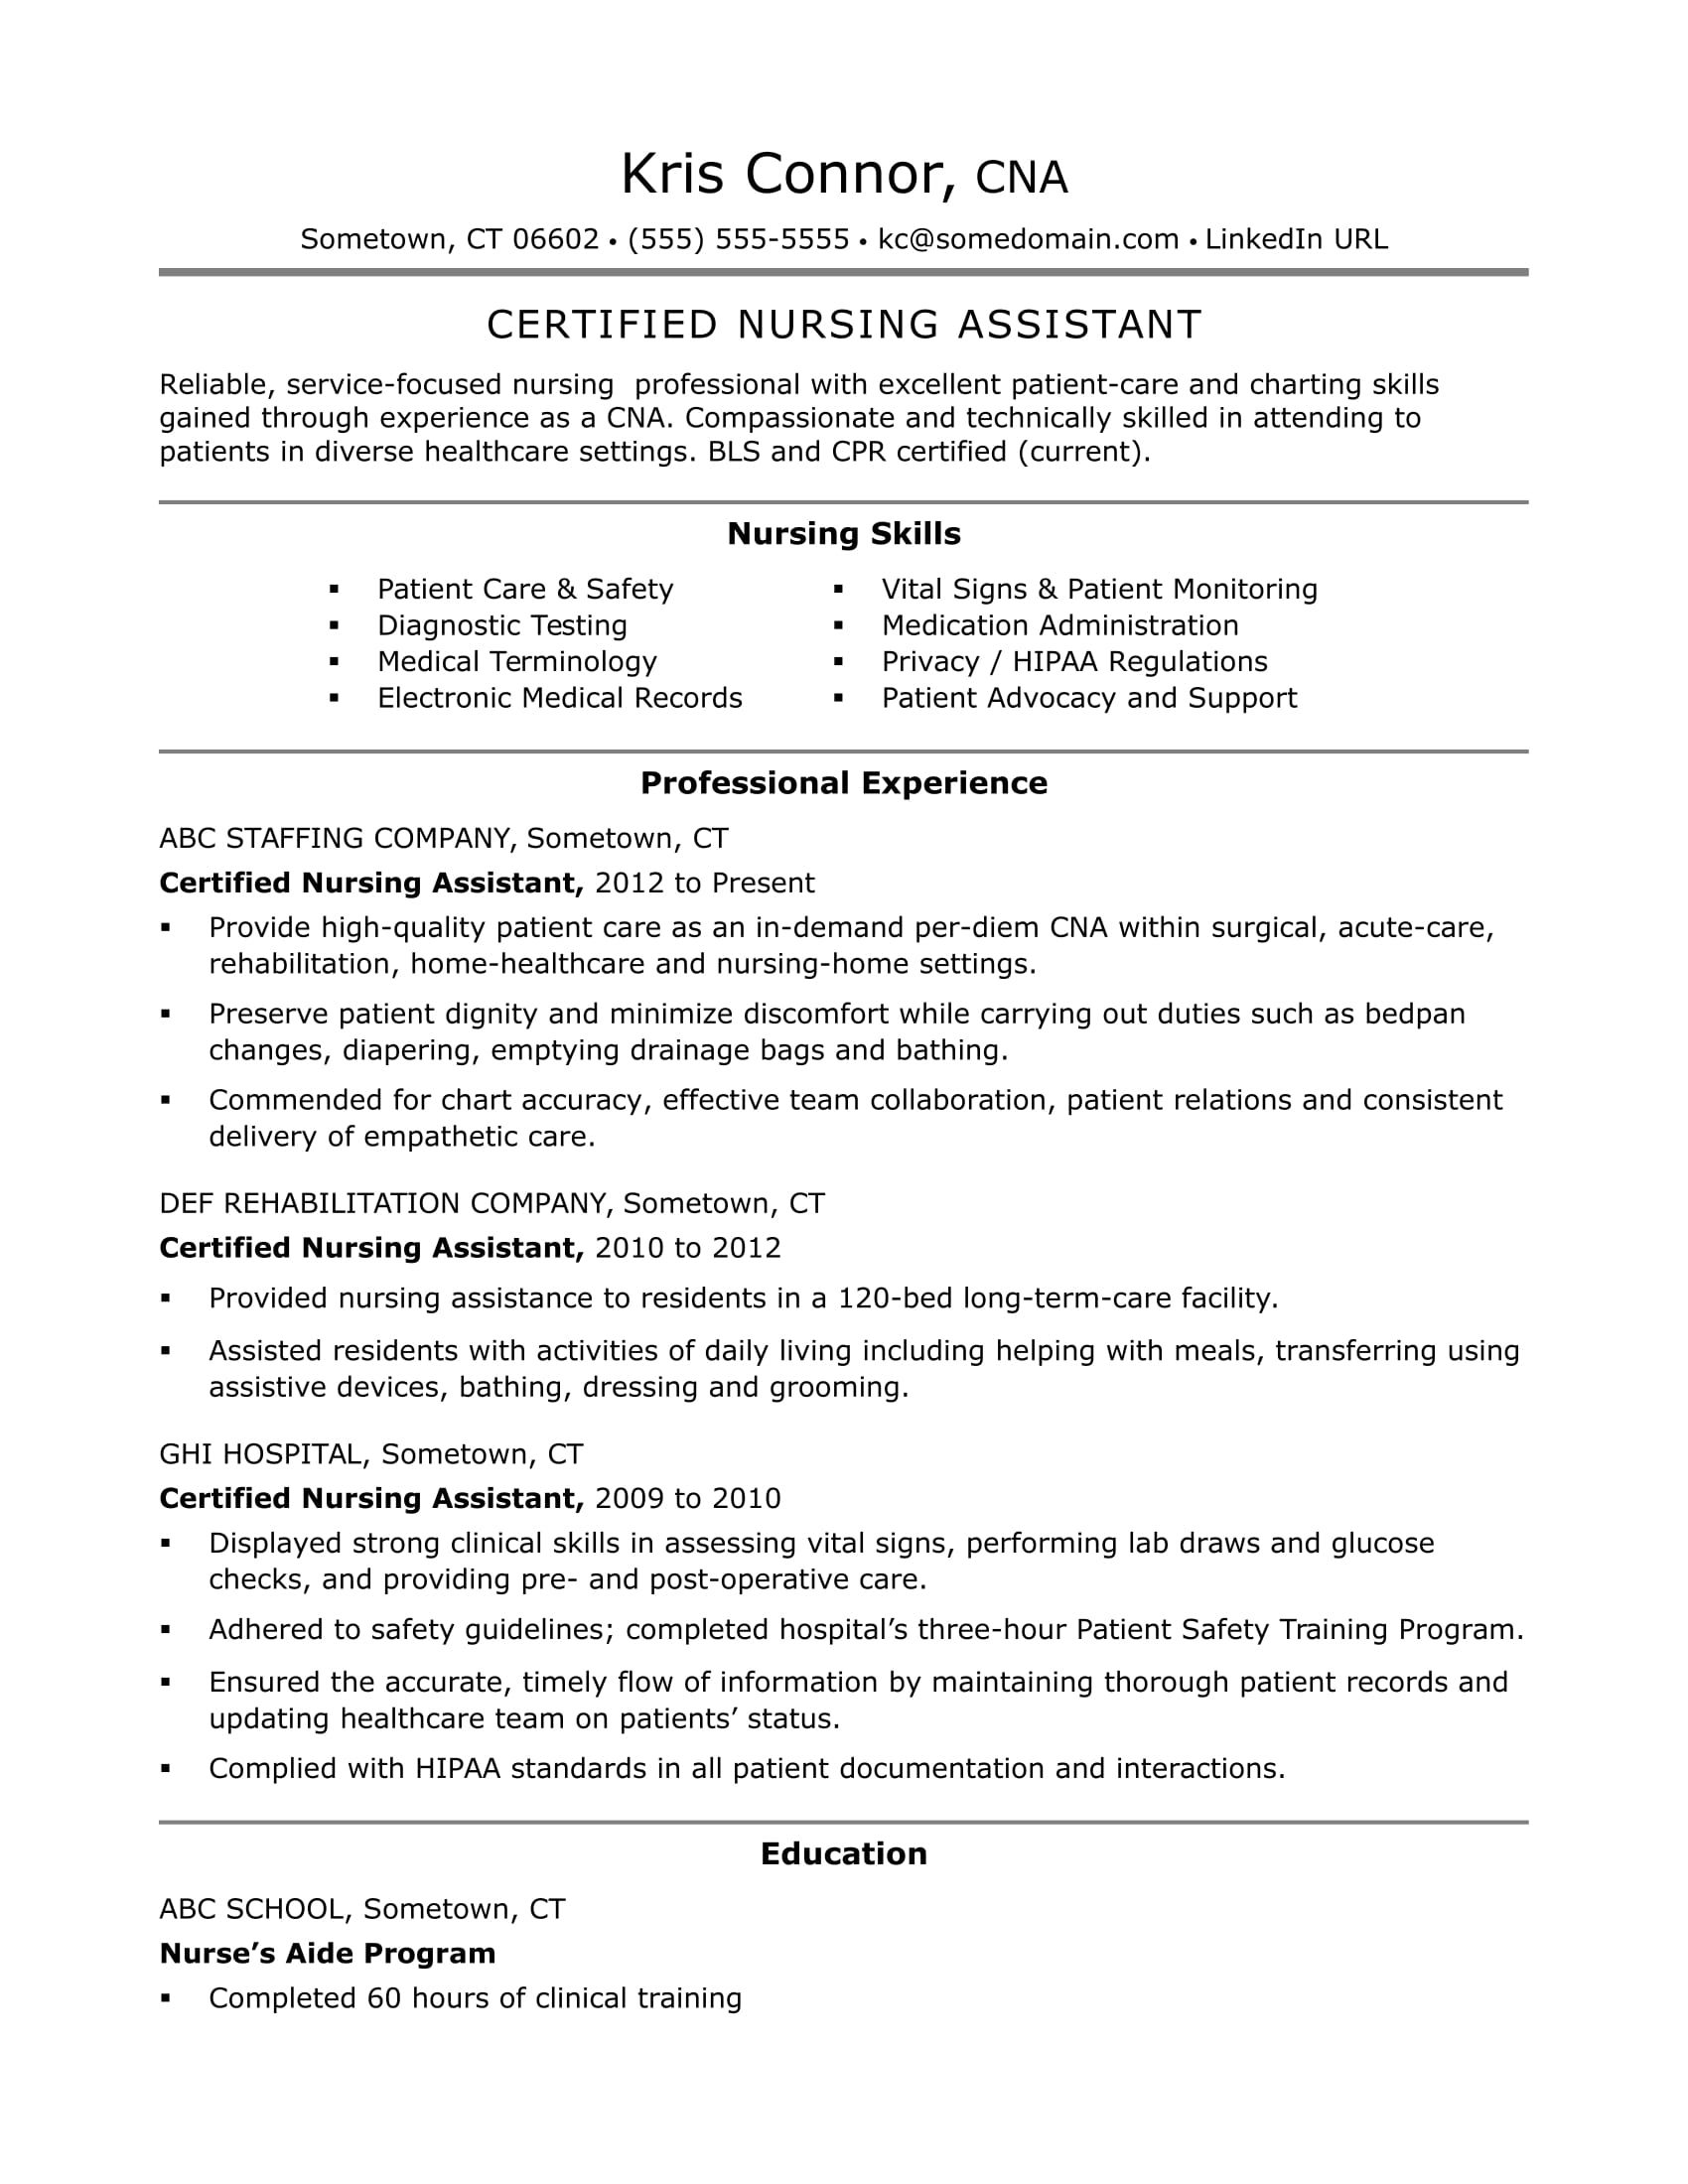 resume Hospital Cna Resume cna resume examples skills for cnas monster com example